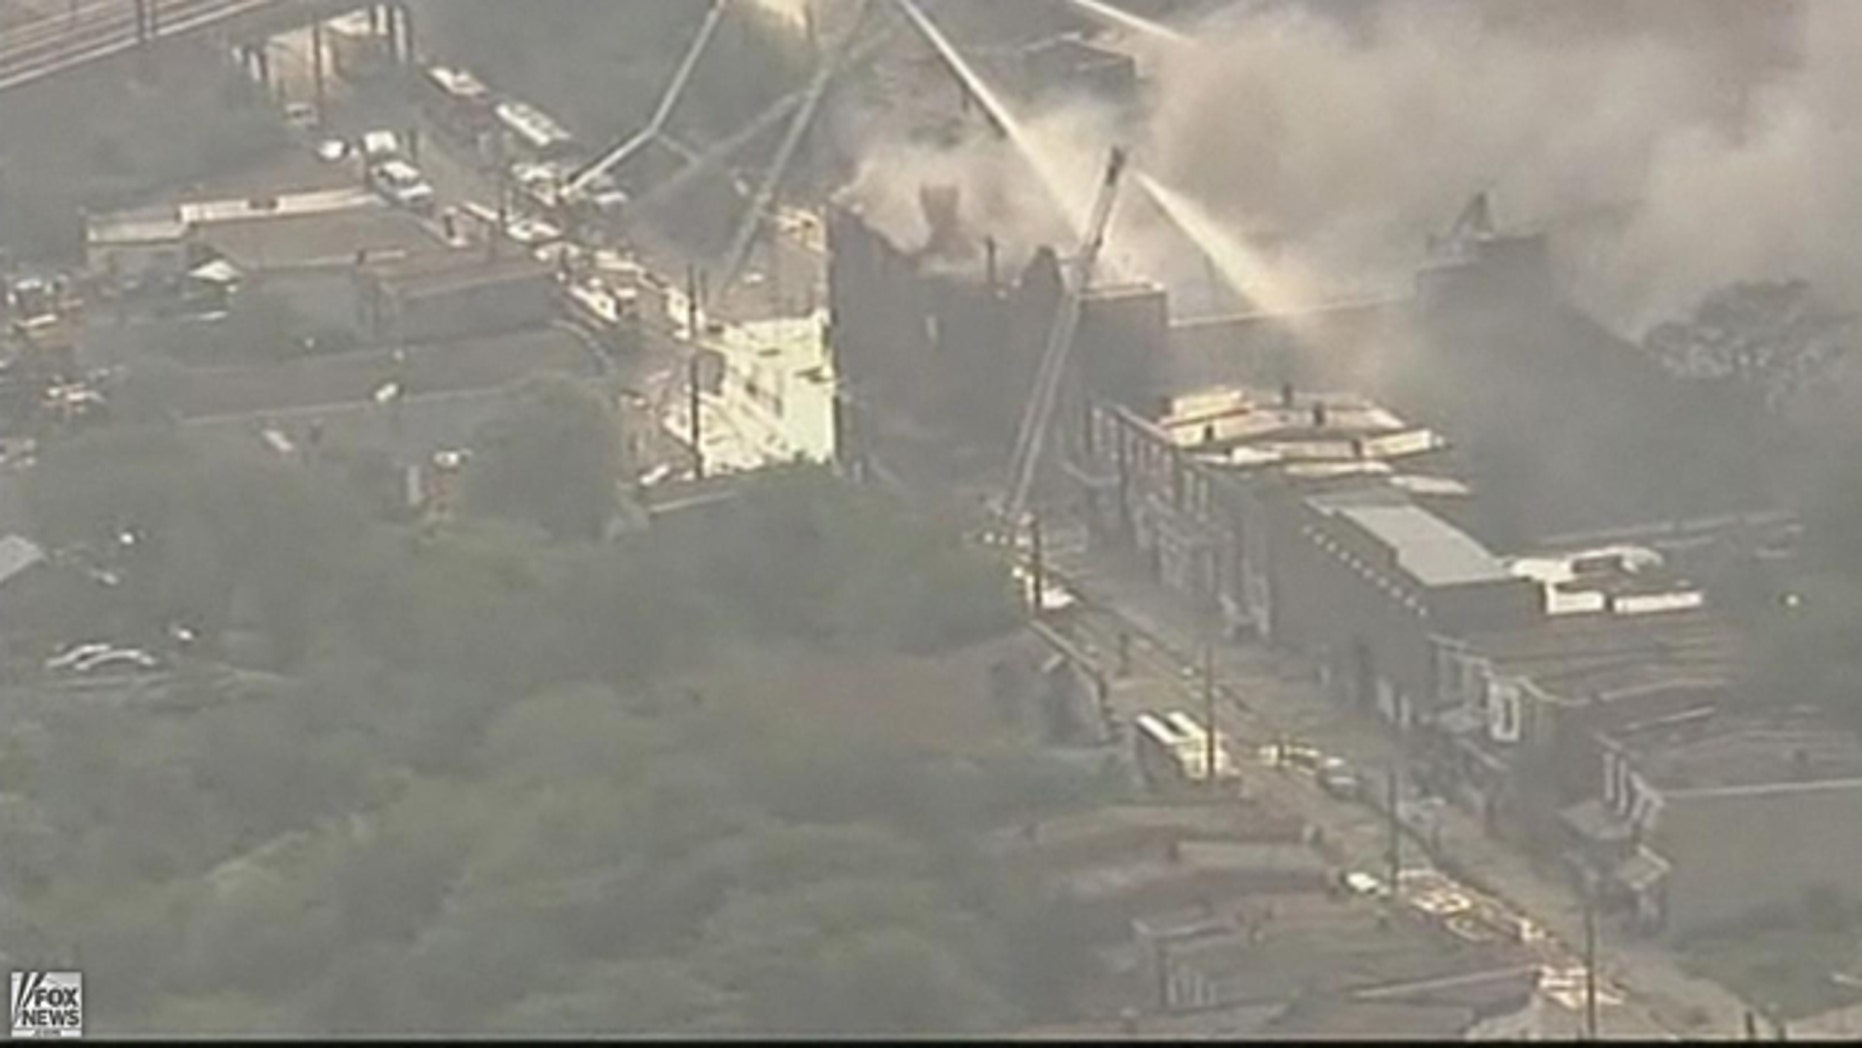 June 9: Fire crews in Camden are battling a 7-alarm blaze at the Old Reliable Tire Company on Chestnut and Orchard streets. The fire has spread to neighboring homes. Evacuations are underway.